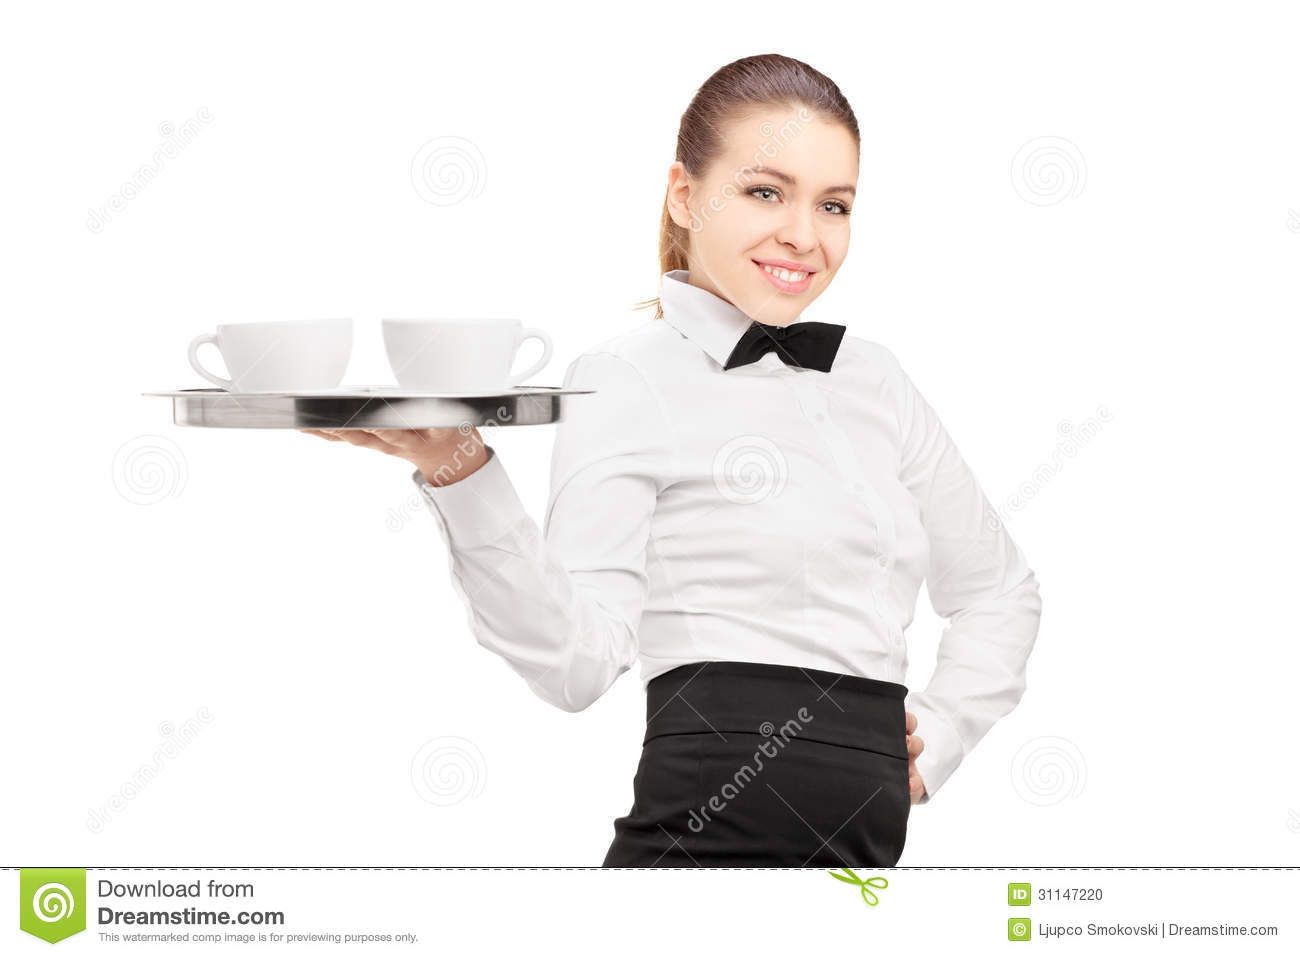 ... Holding A Tray With Coffee Cups On It Stock Photo - Image: 31147220